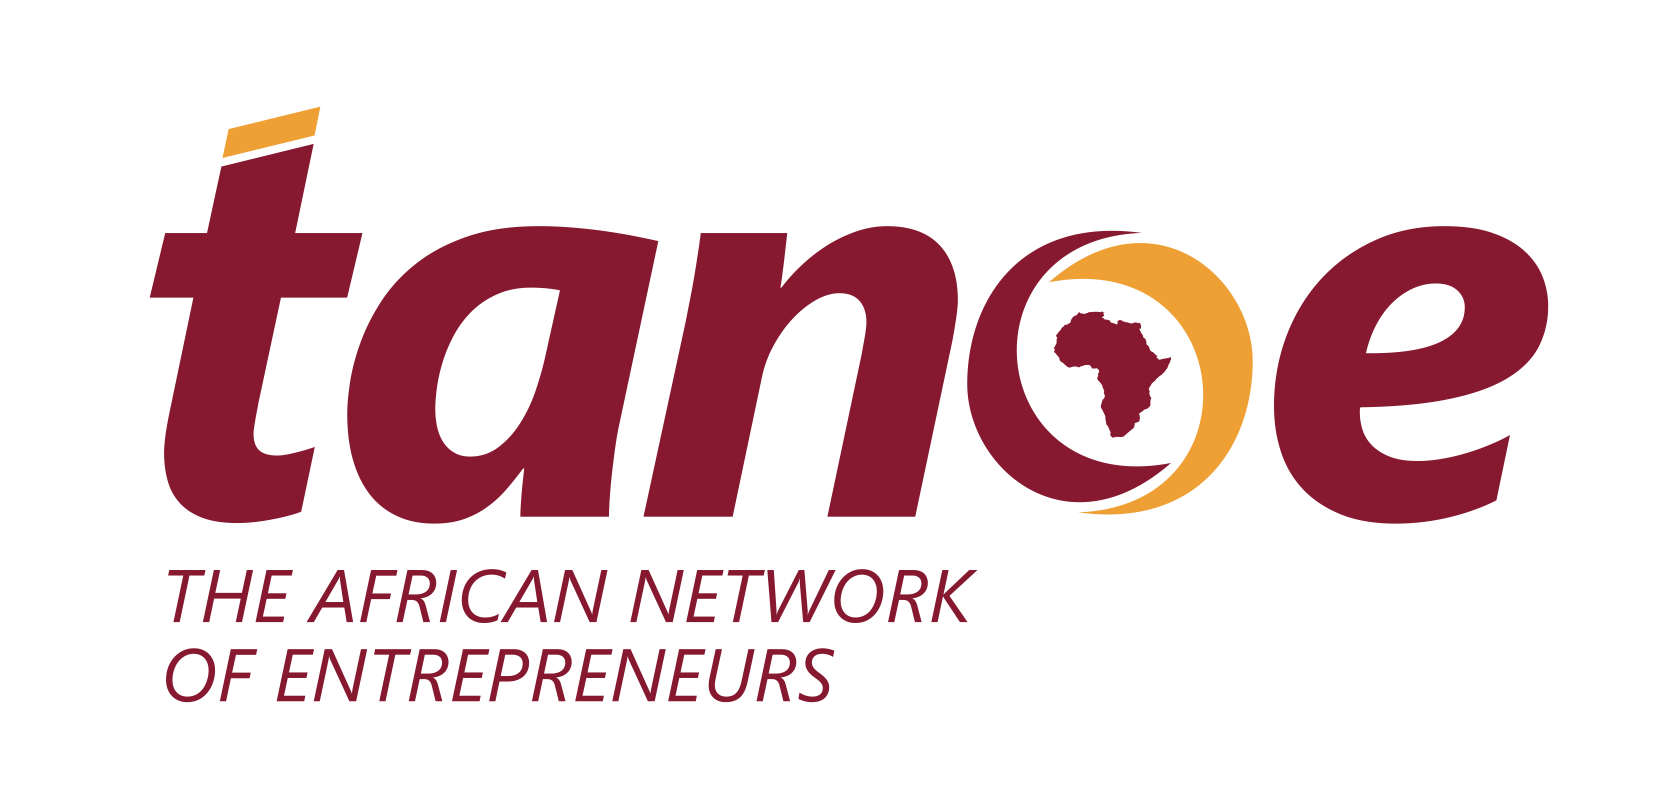 The African Network Of Entrepreneurs